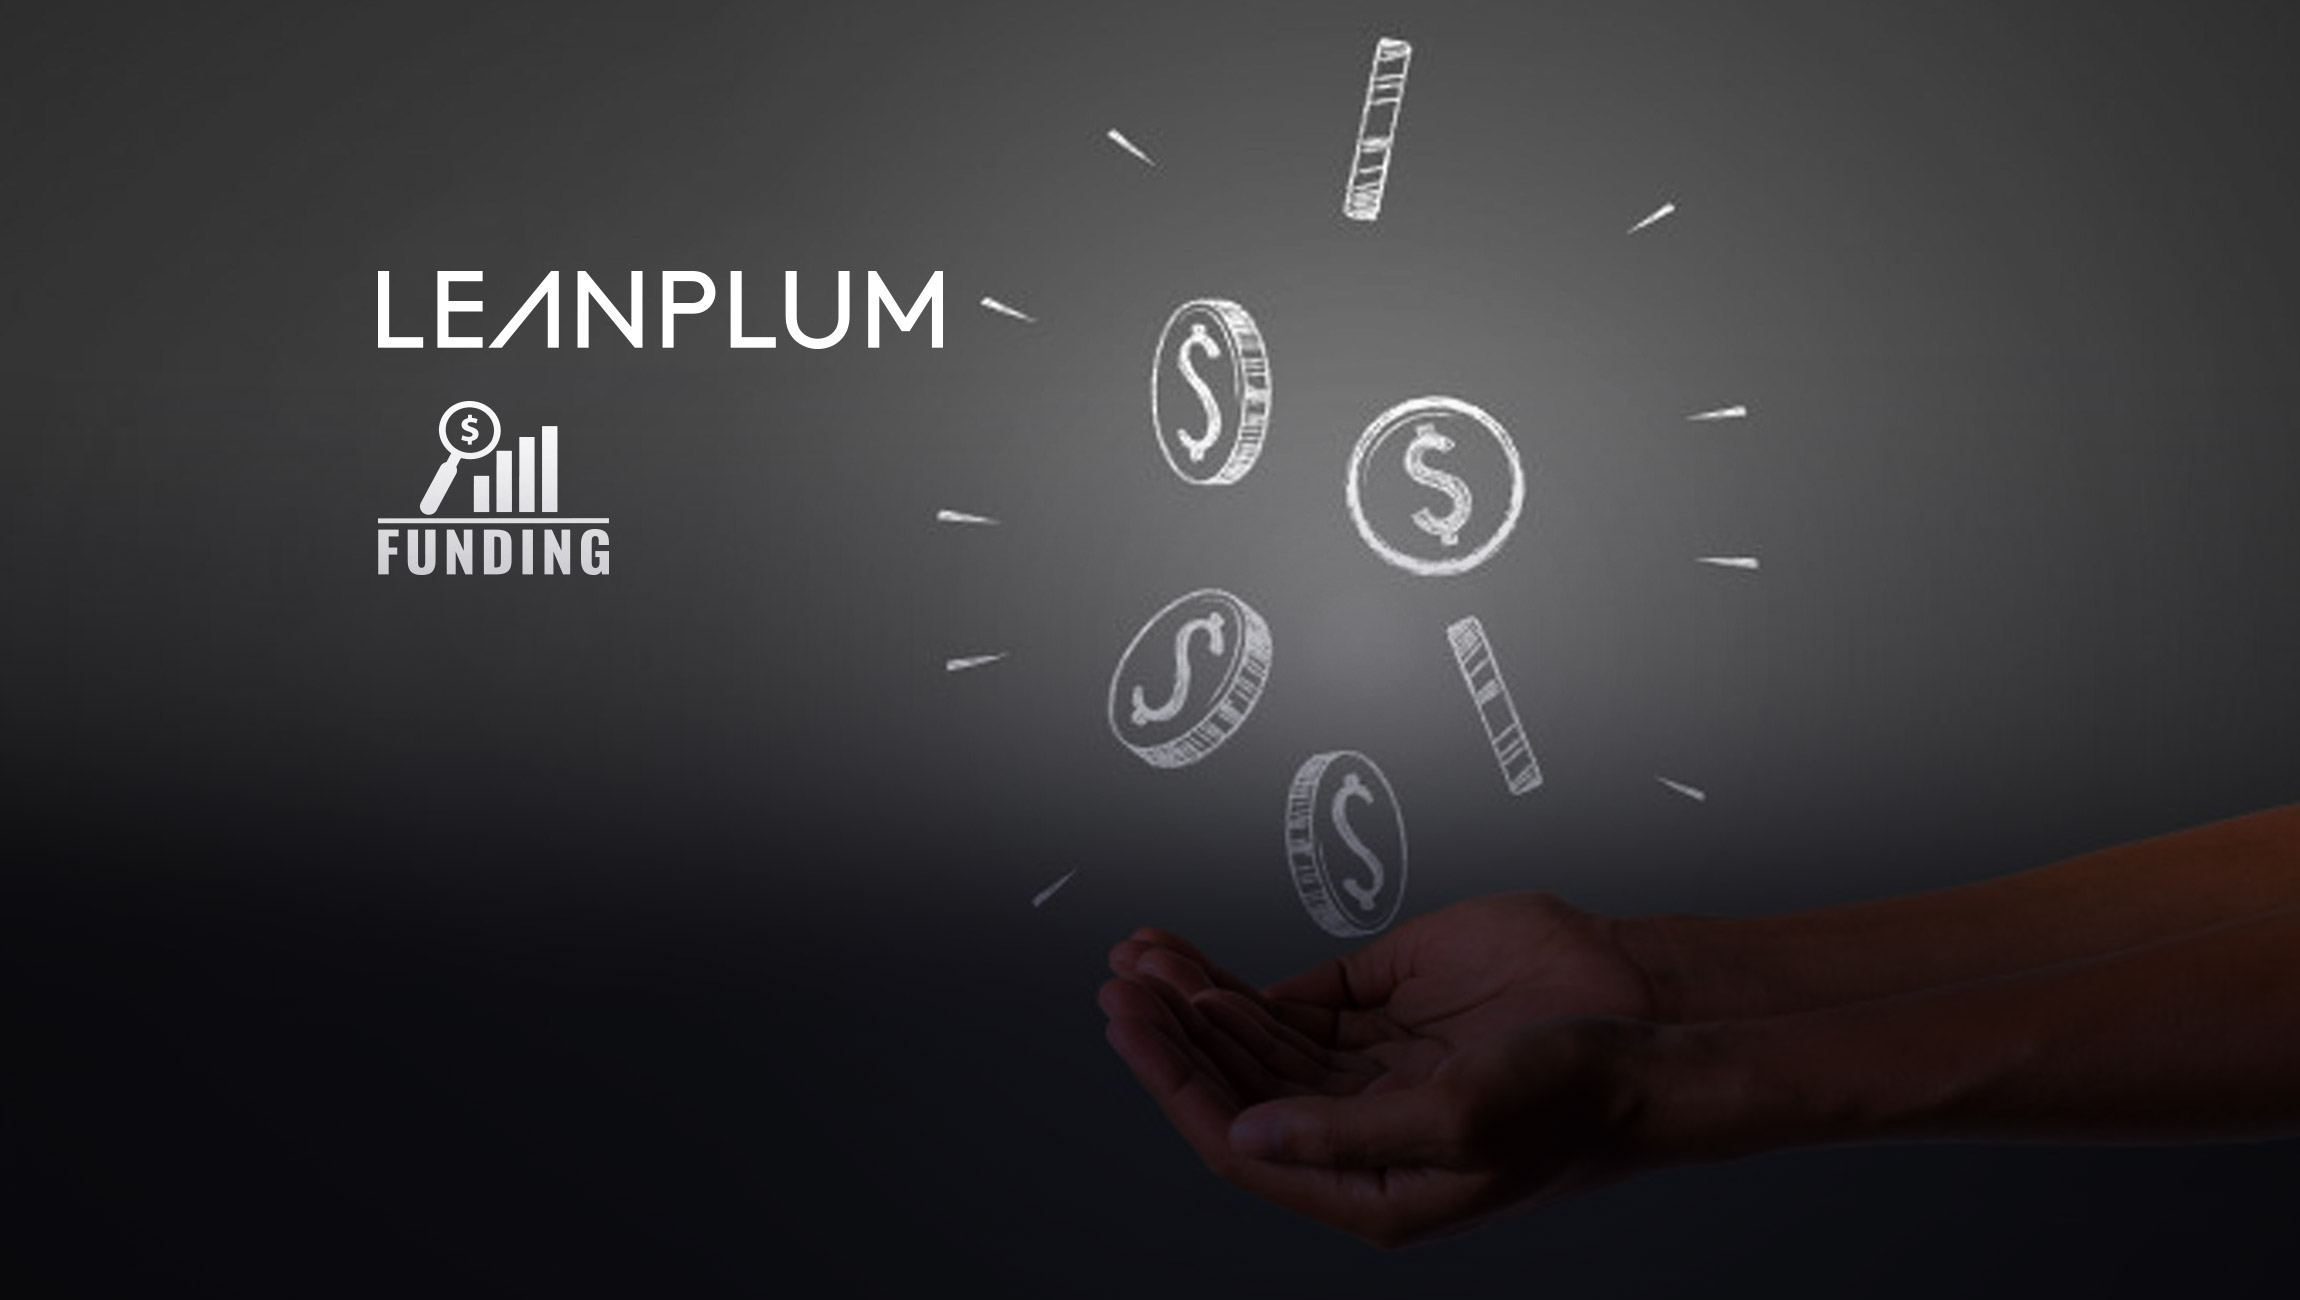 Leanplum Raises $27 Million in New Funding and Announces Leadership Changes for Growth